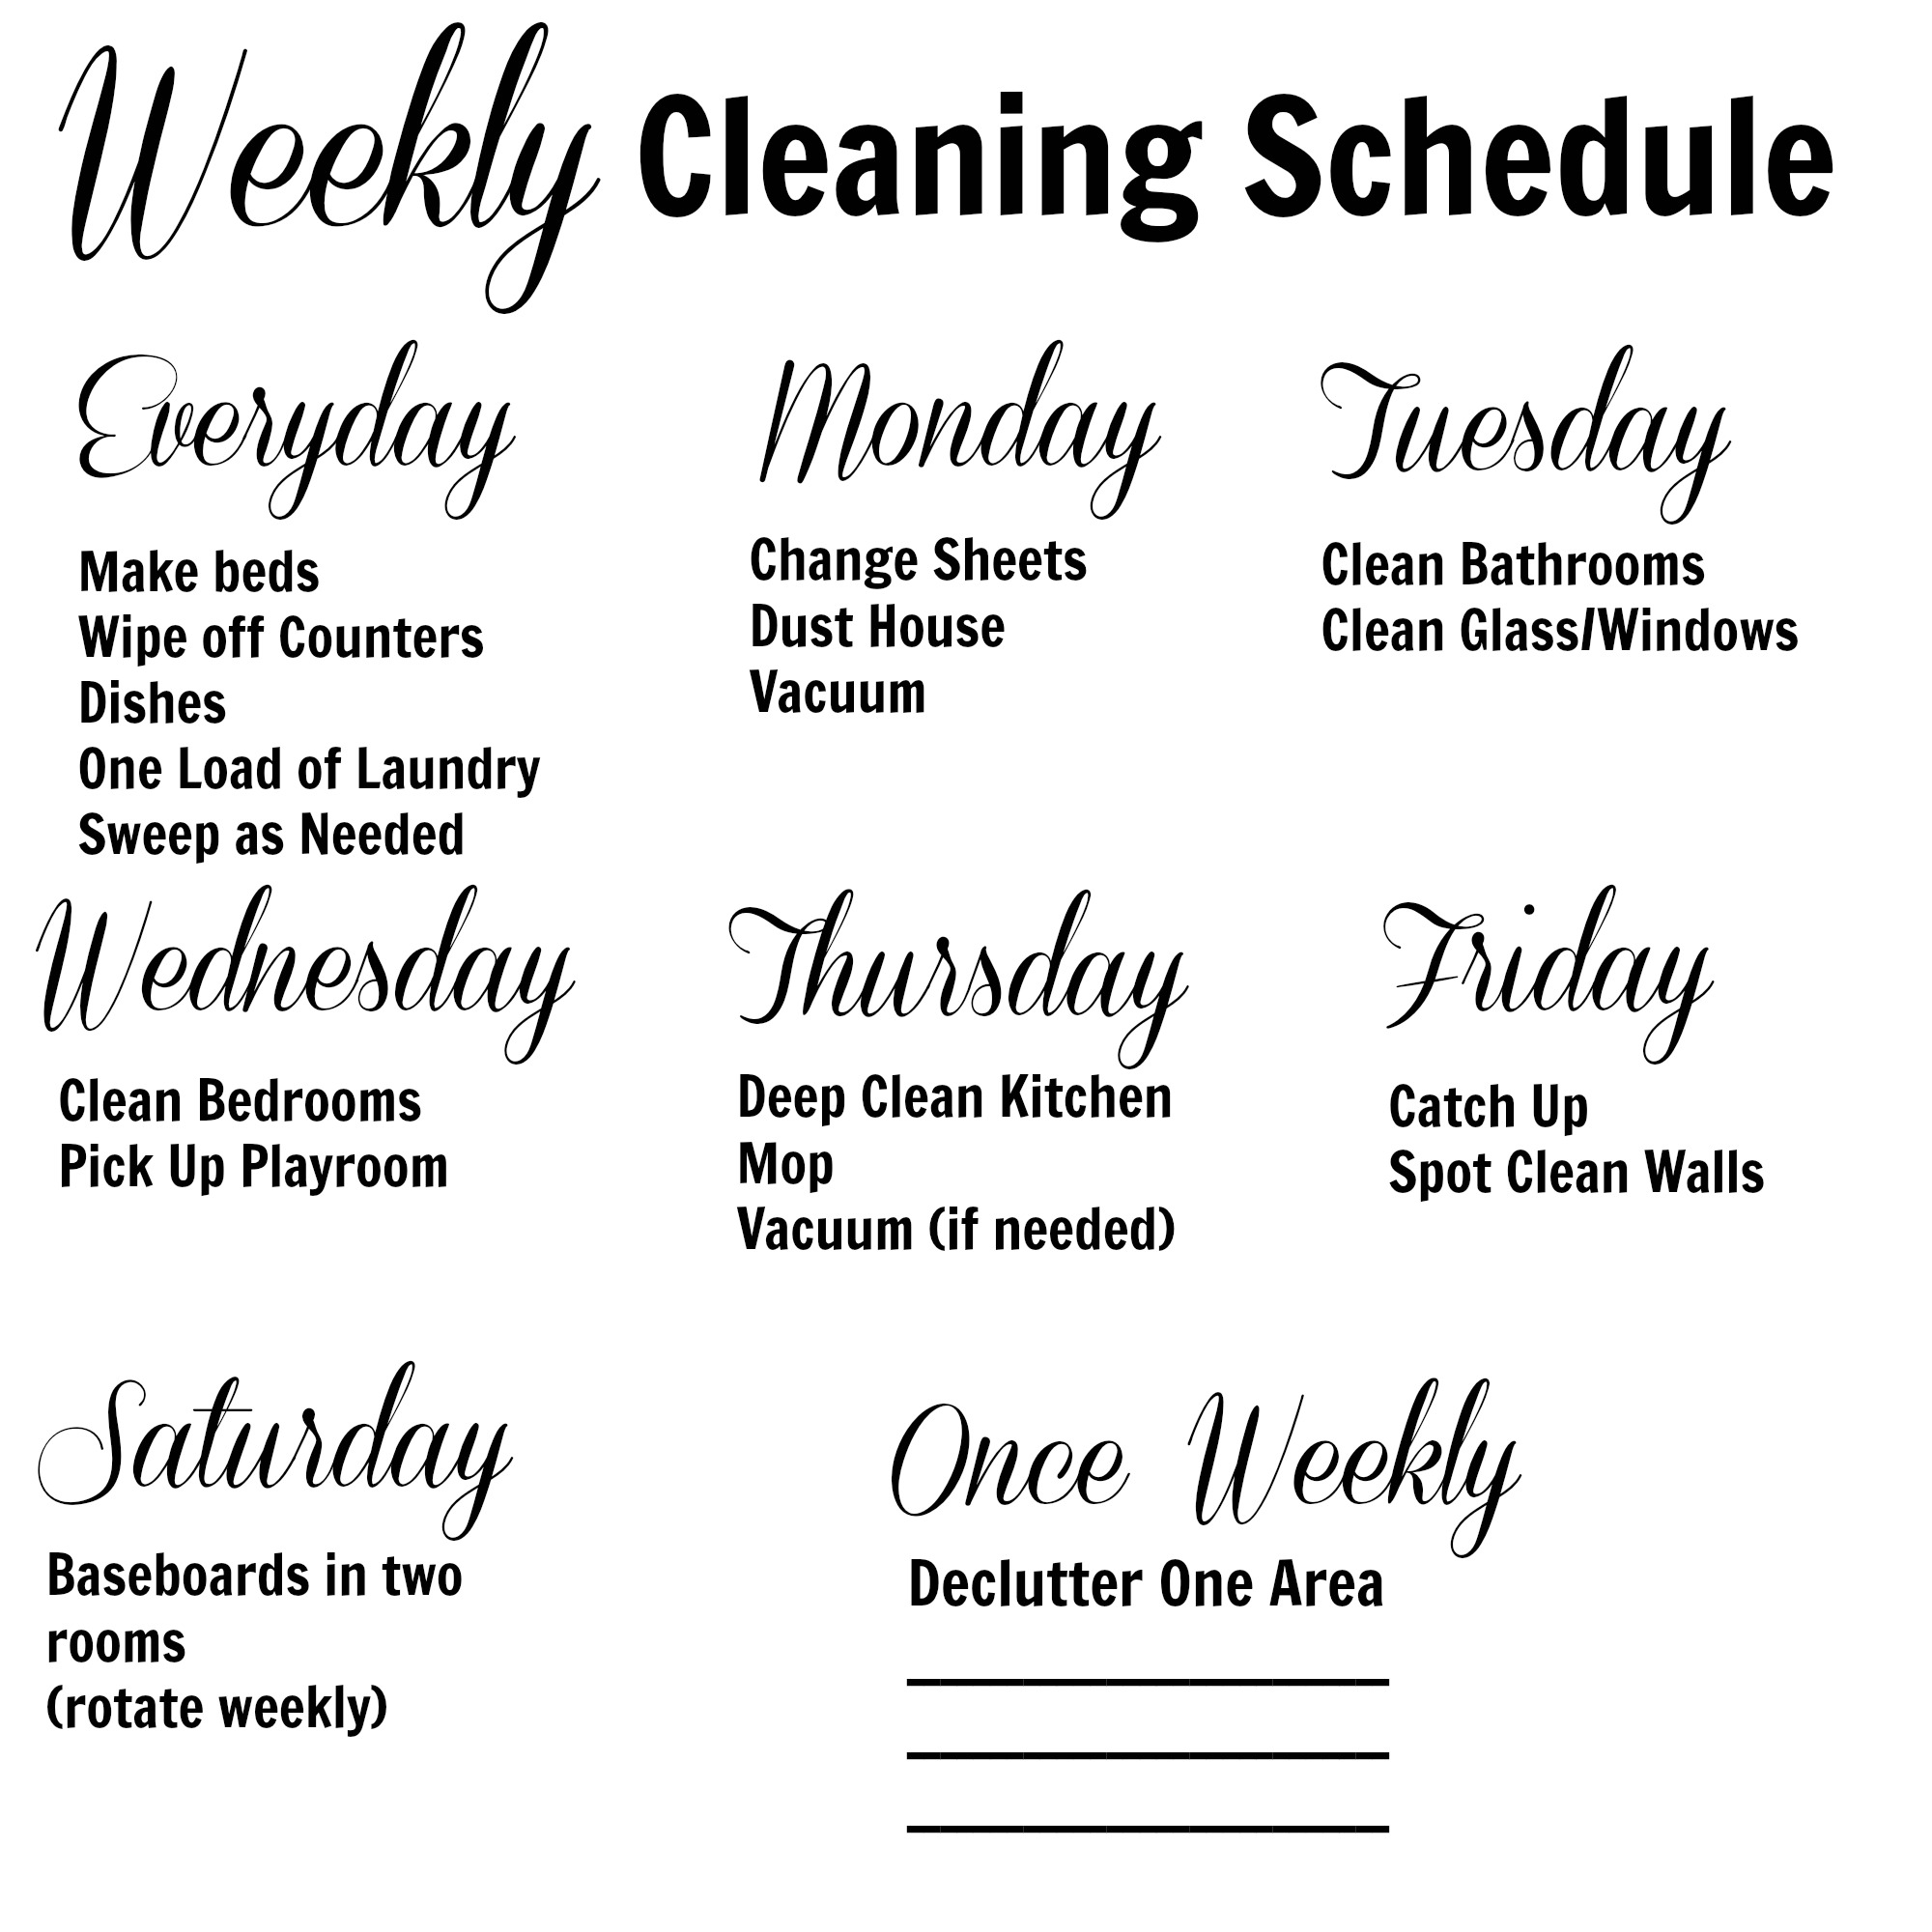 Weekly Cleaning Schedule - Life in the Green House